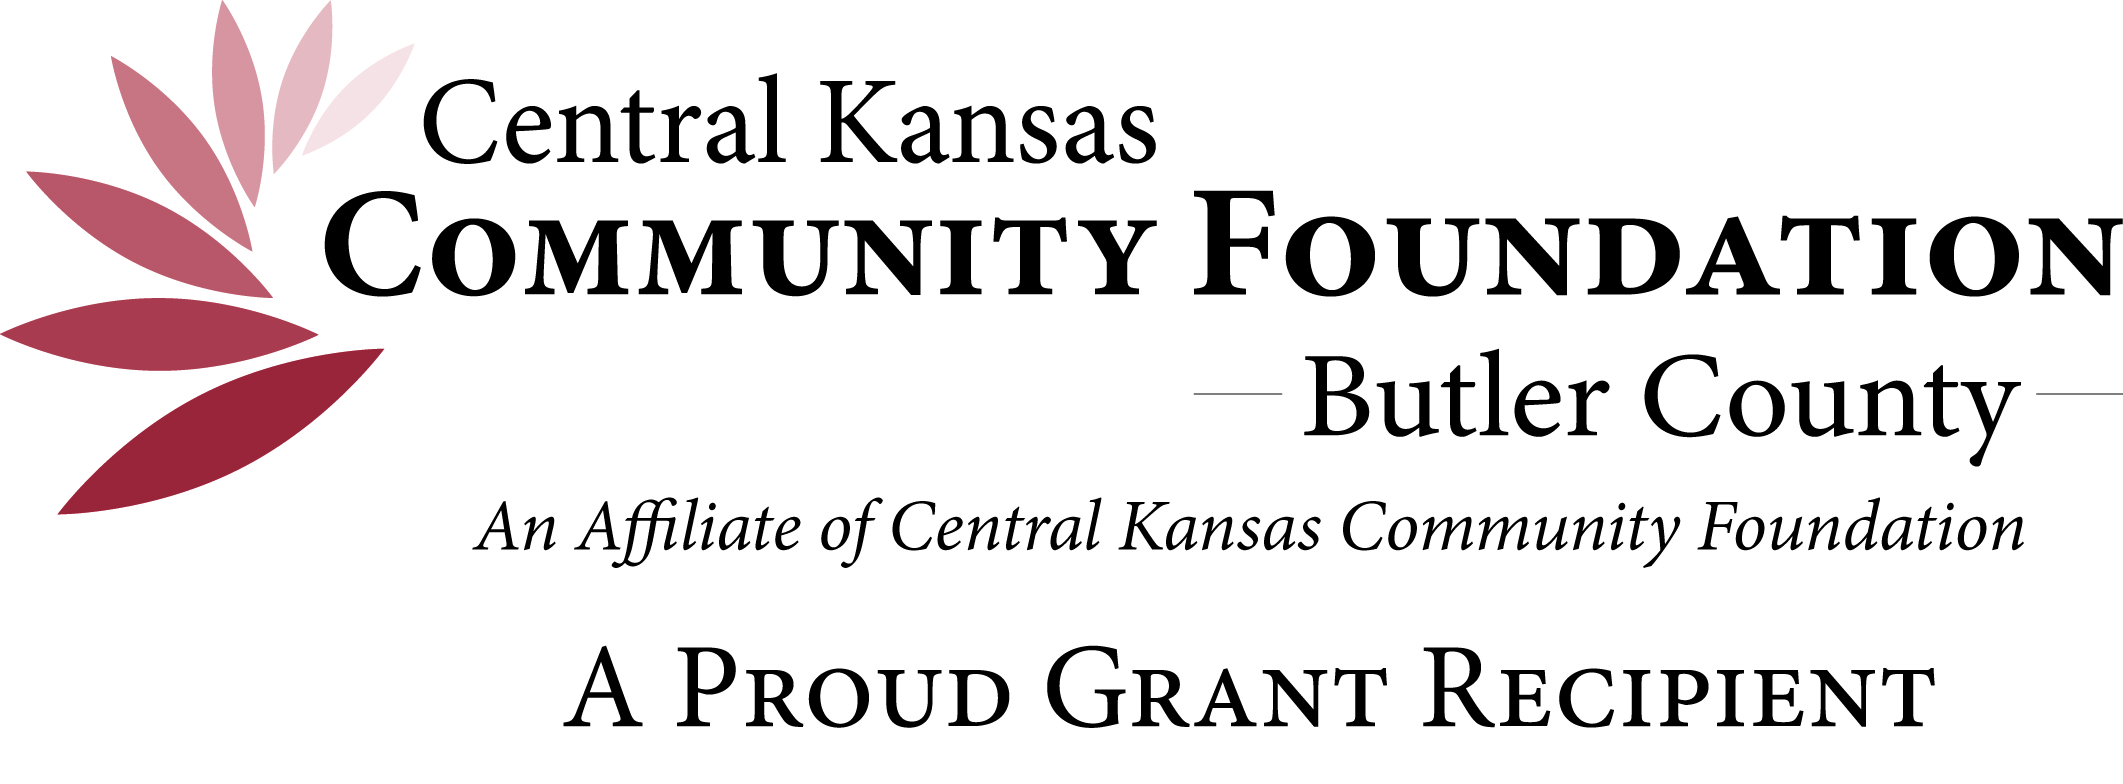 Kansas butler county andover - Butler County Community Foundation Grant Recipient Logo